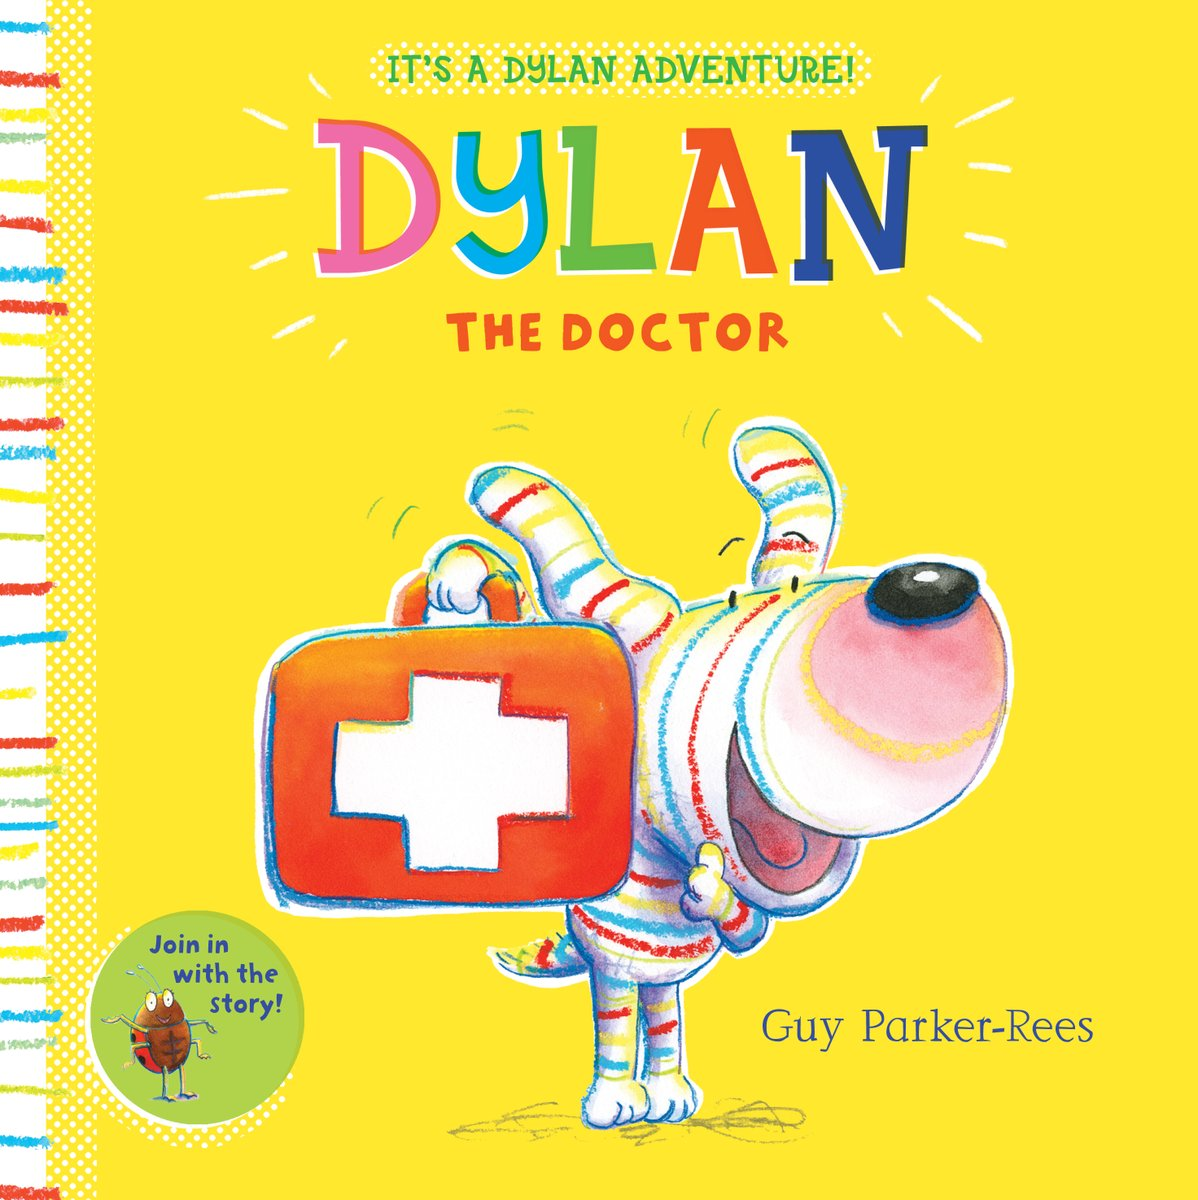 Blog Tour Schedule: Dylan the Doctor by Guy Parker-Reeves